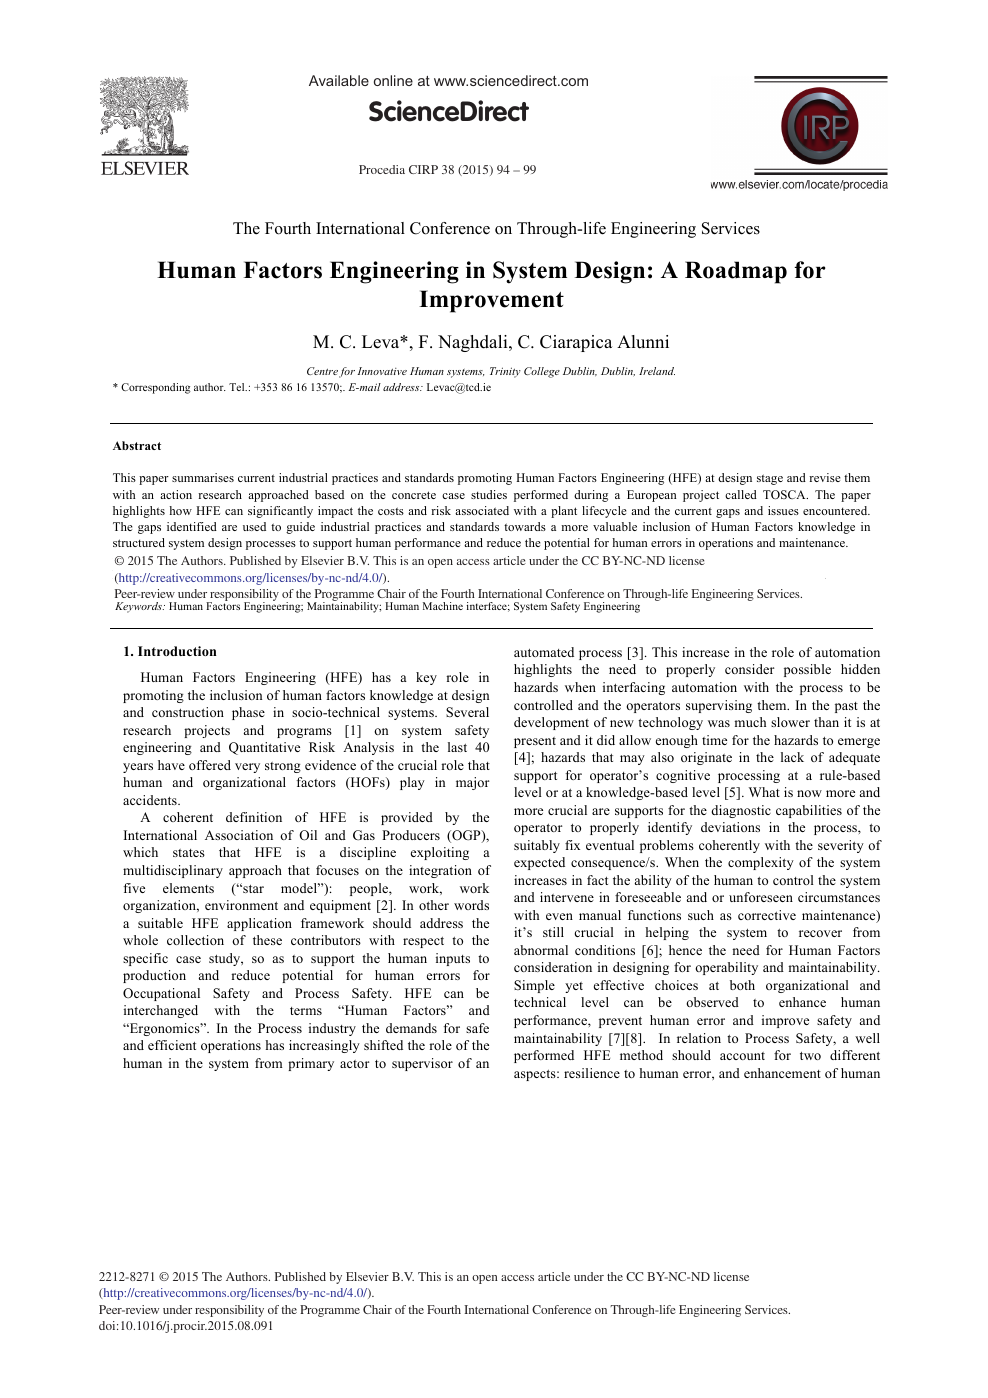 Human Factors Engineering In System Design A Roadmap For Improvement Topic Of Research Paper In Computer And Information Sciences Download Scholarly Article Pdf And Read For Free On Cyberleninka Open Science